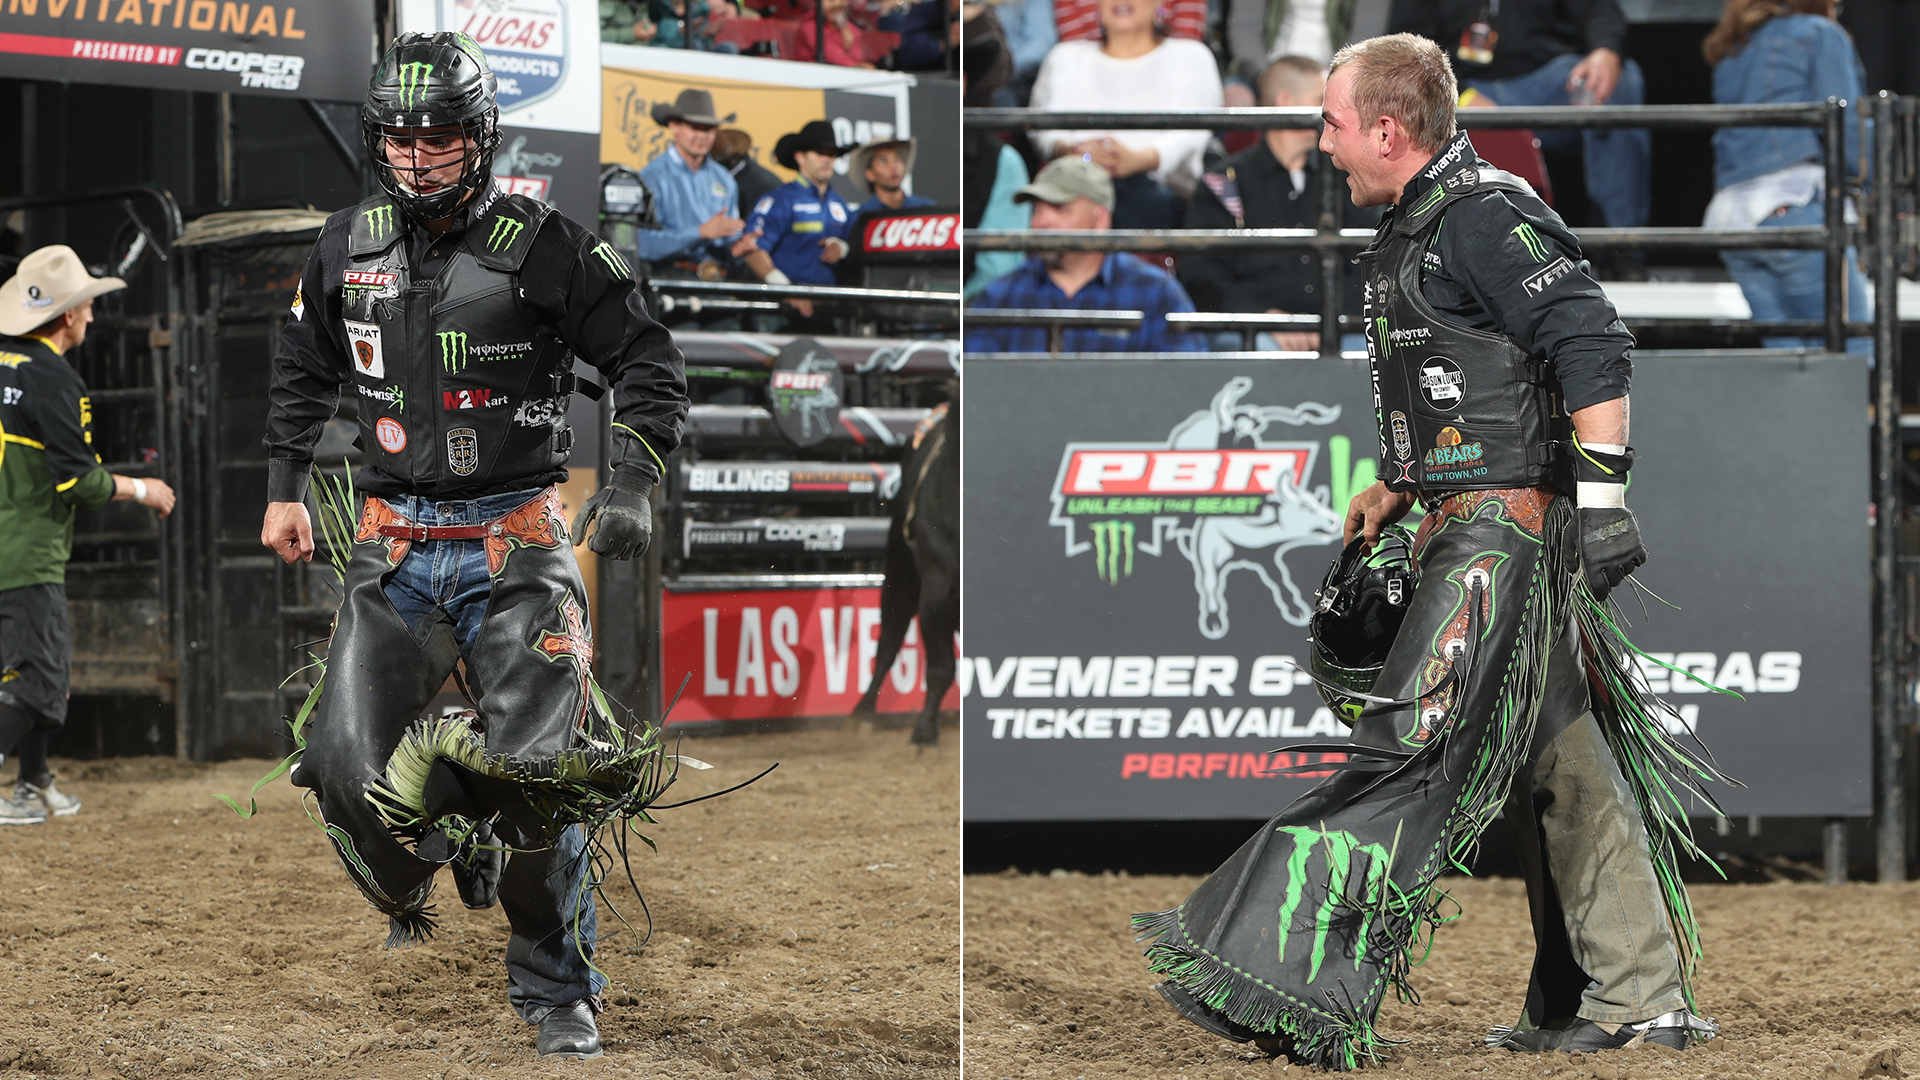 15/15 Bucking Battle: Leme and Outlaw to square off against Smooth Operator and Bruiser